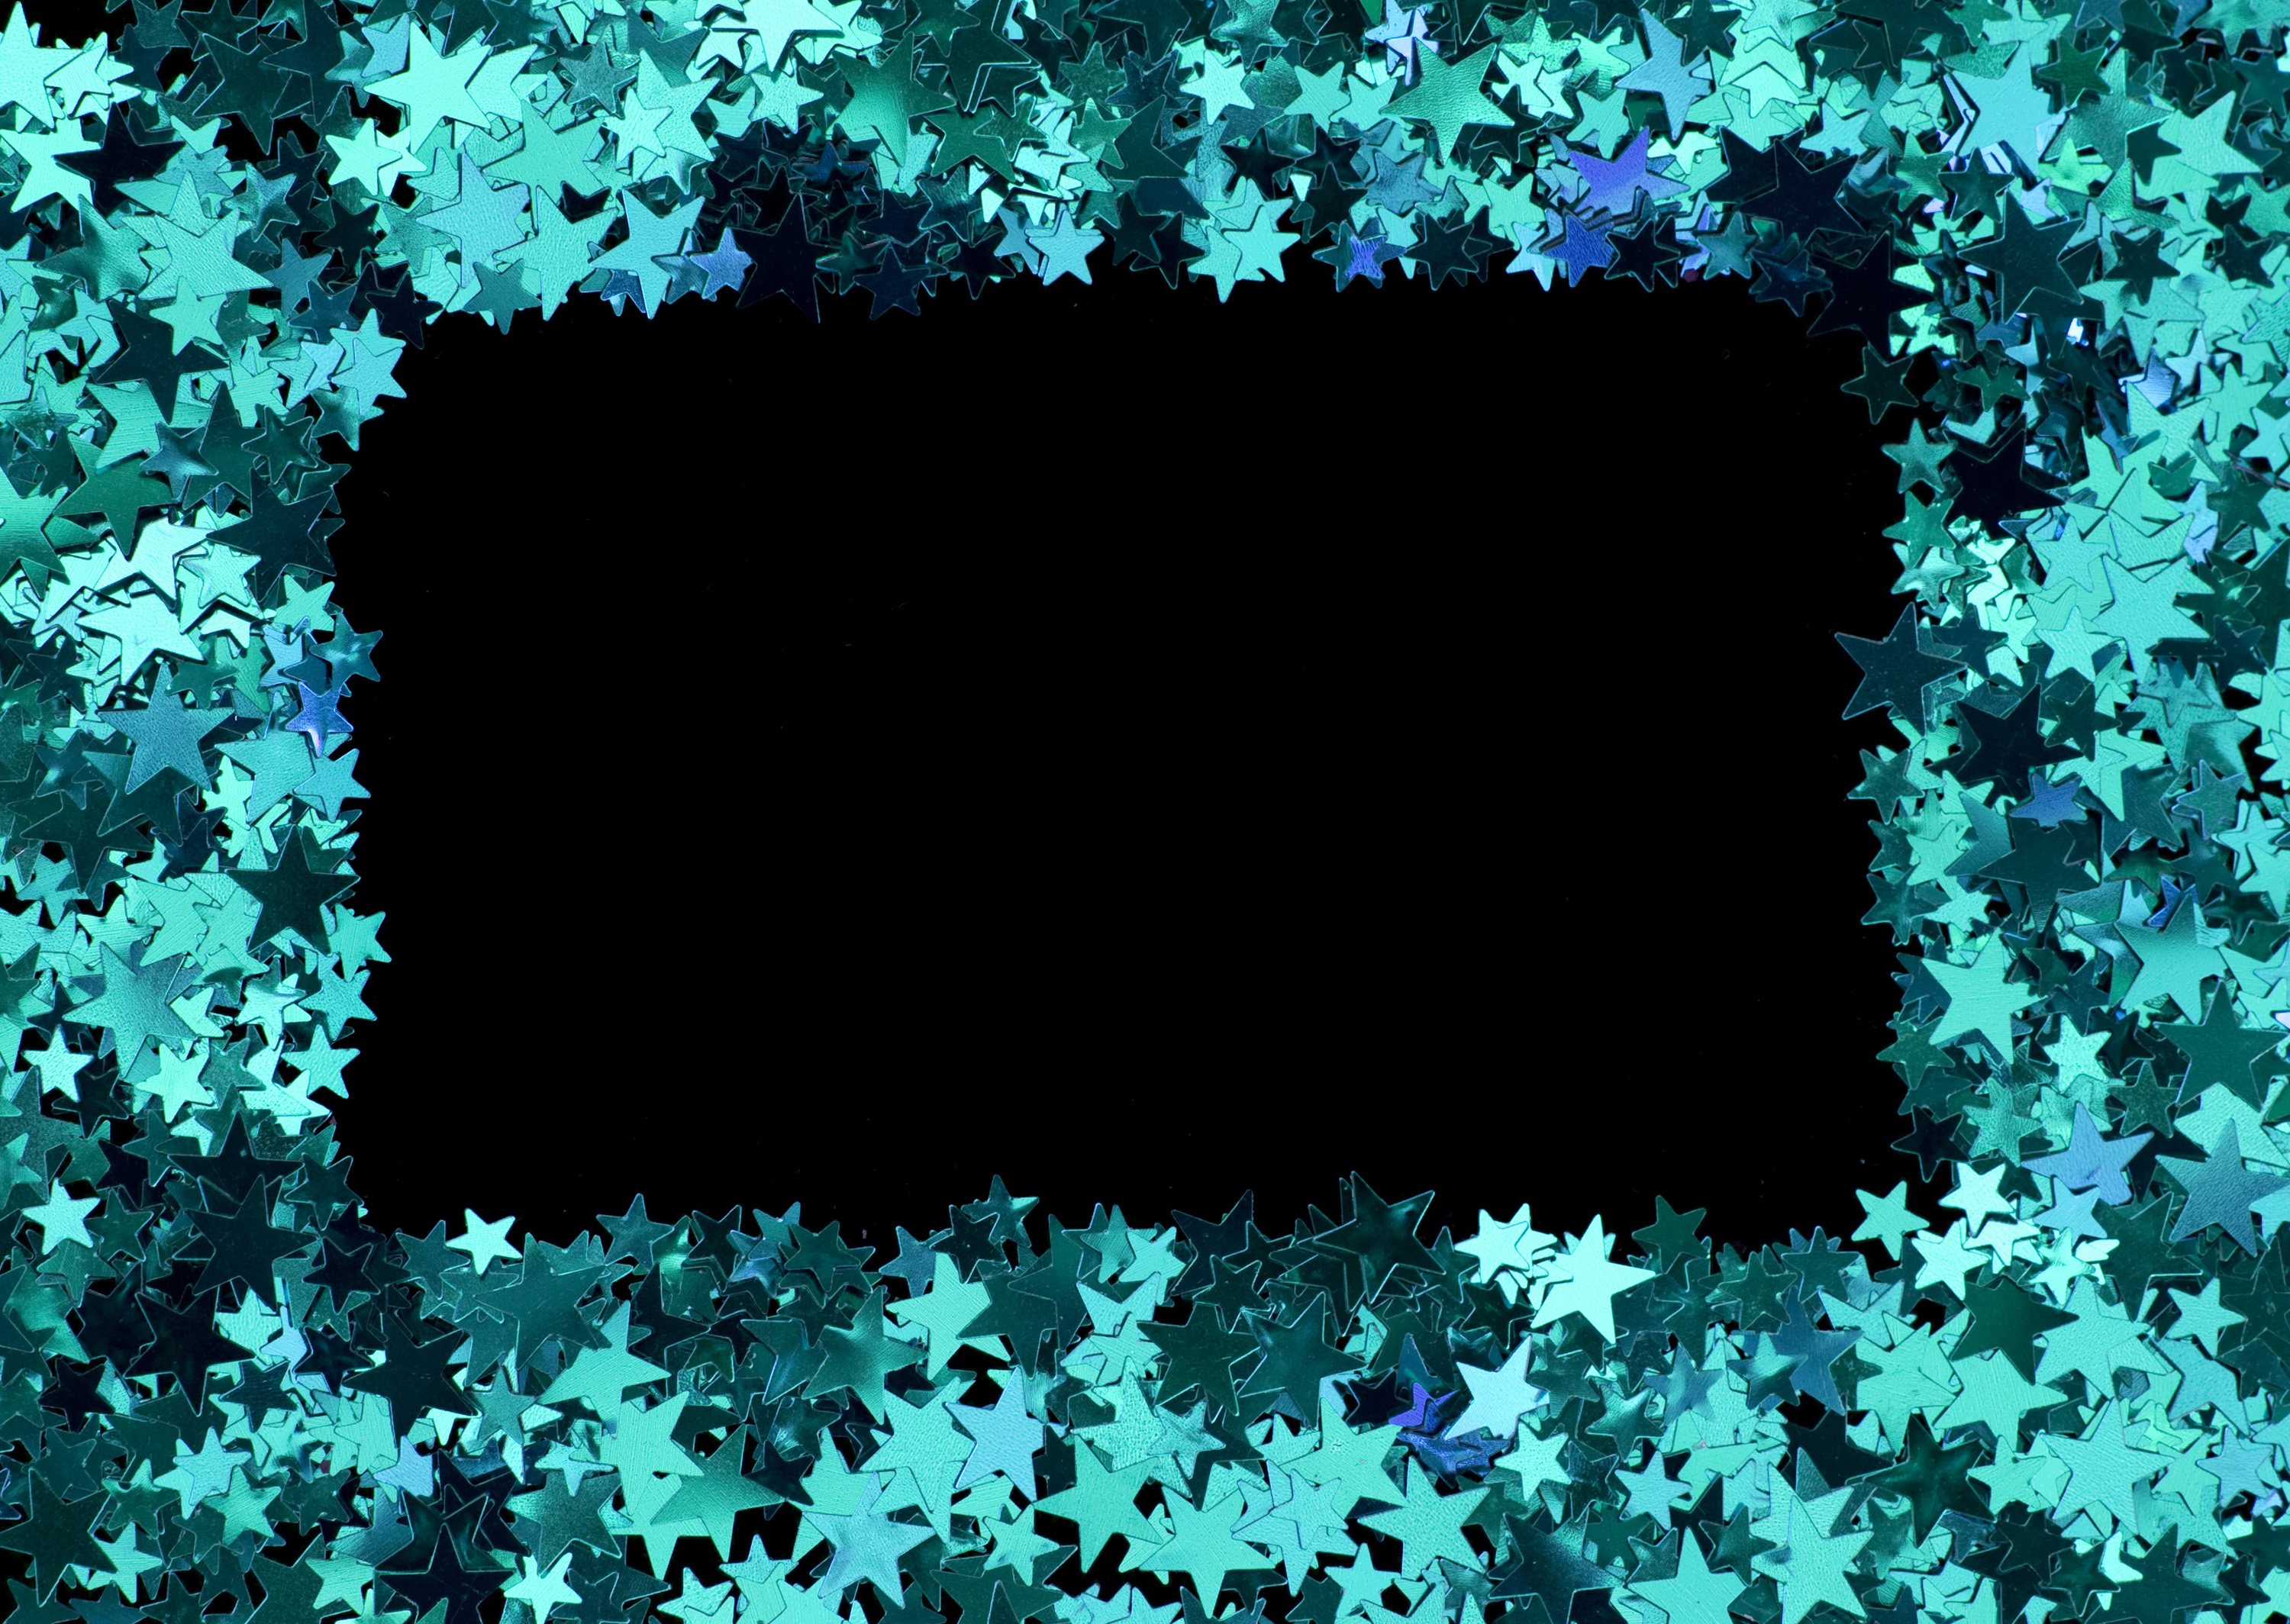 a sparkling blue border of stars to composite as a picture frame or add text